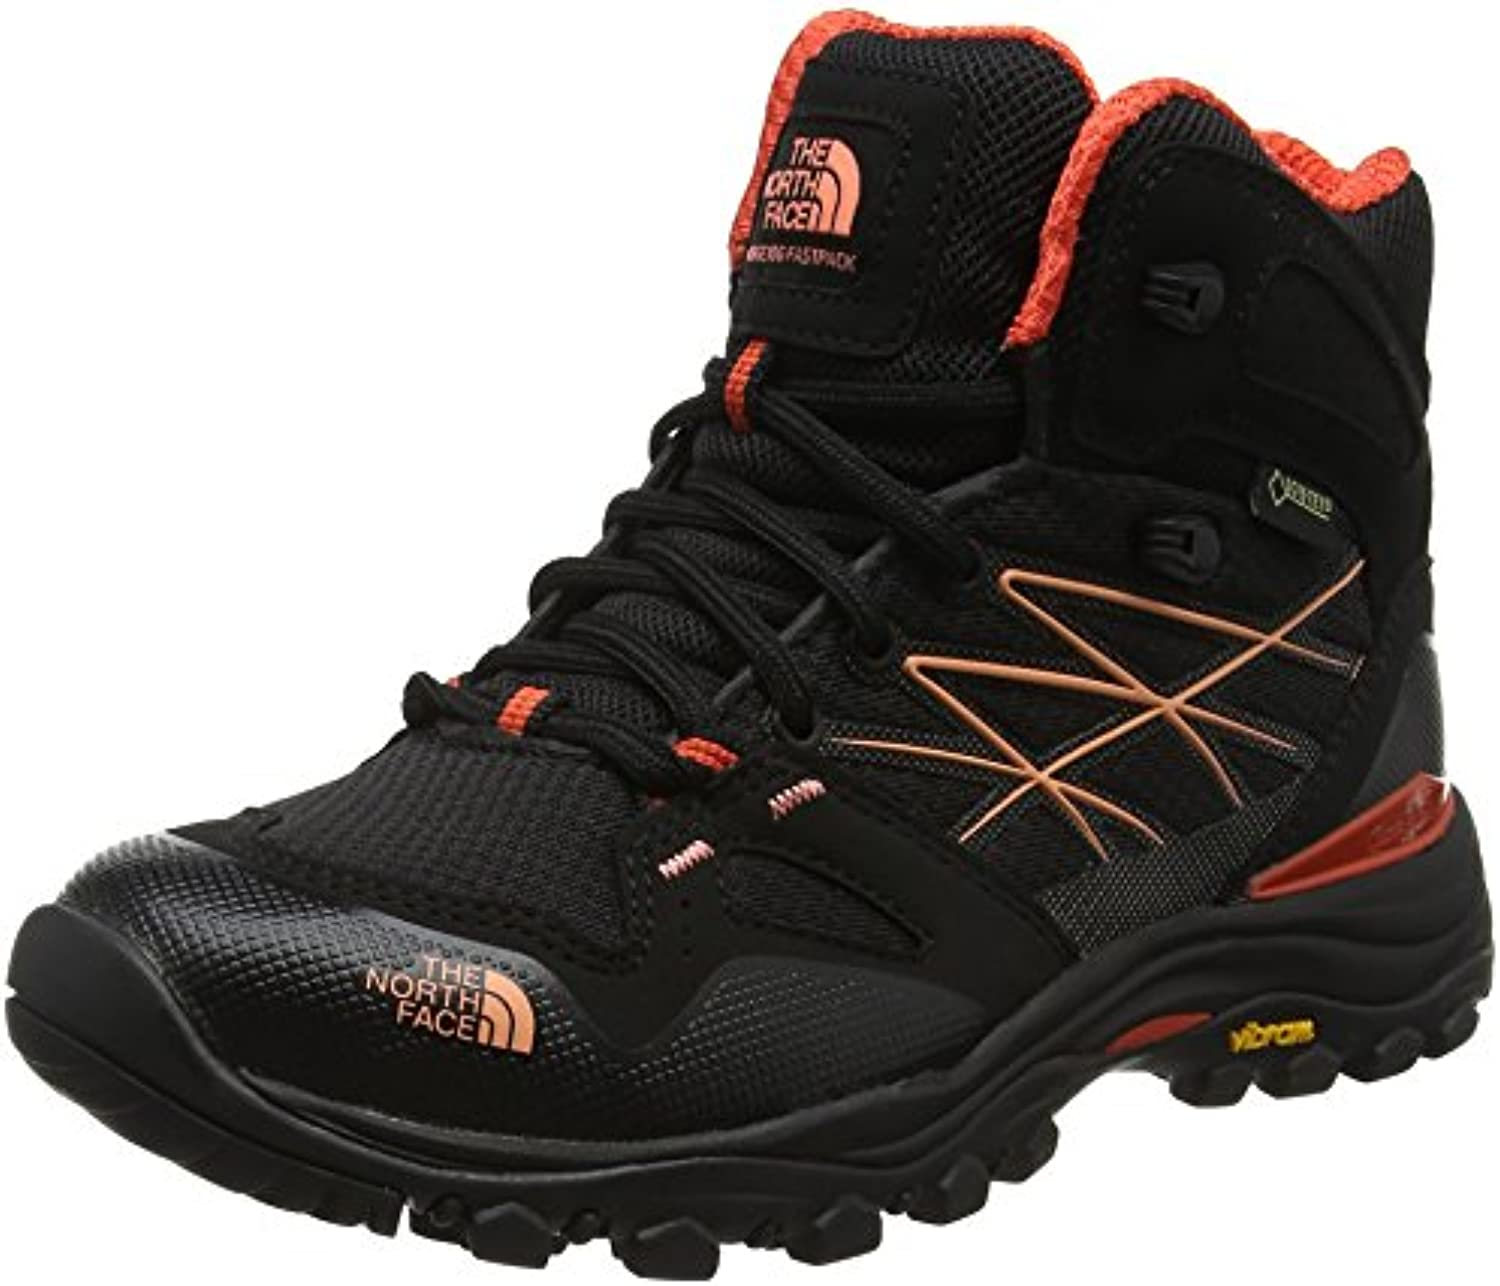 THE NORTH FACE Fastpack, Hedgehog Fastpack, FACE Chaussures de Ran ée Basses FemmeB078K5BLW6Parent af92c3